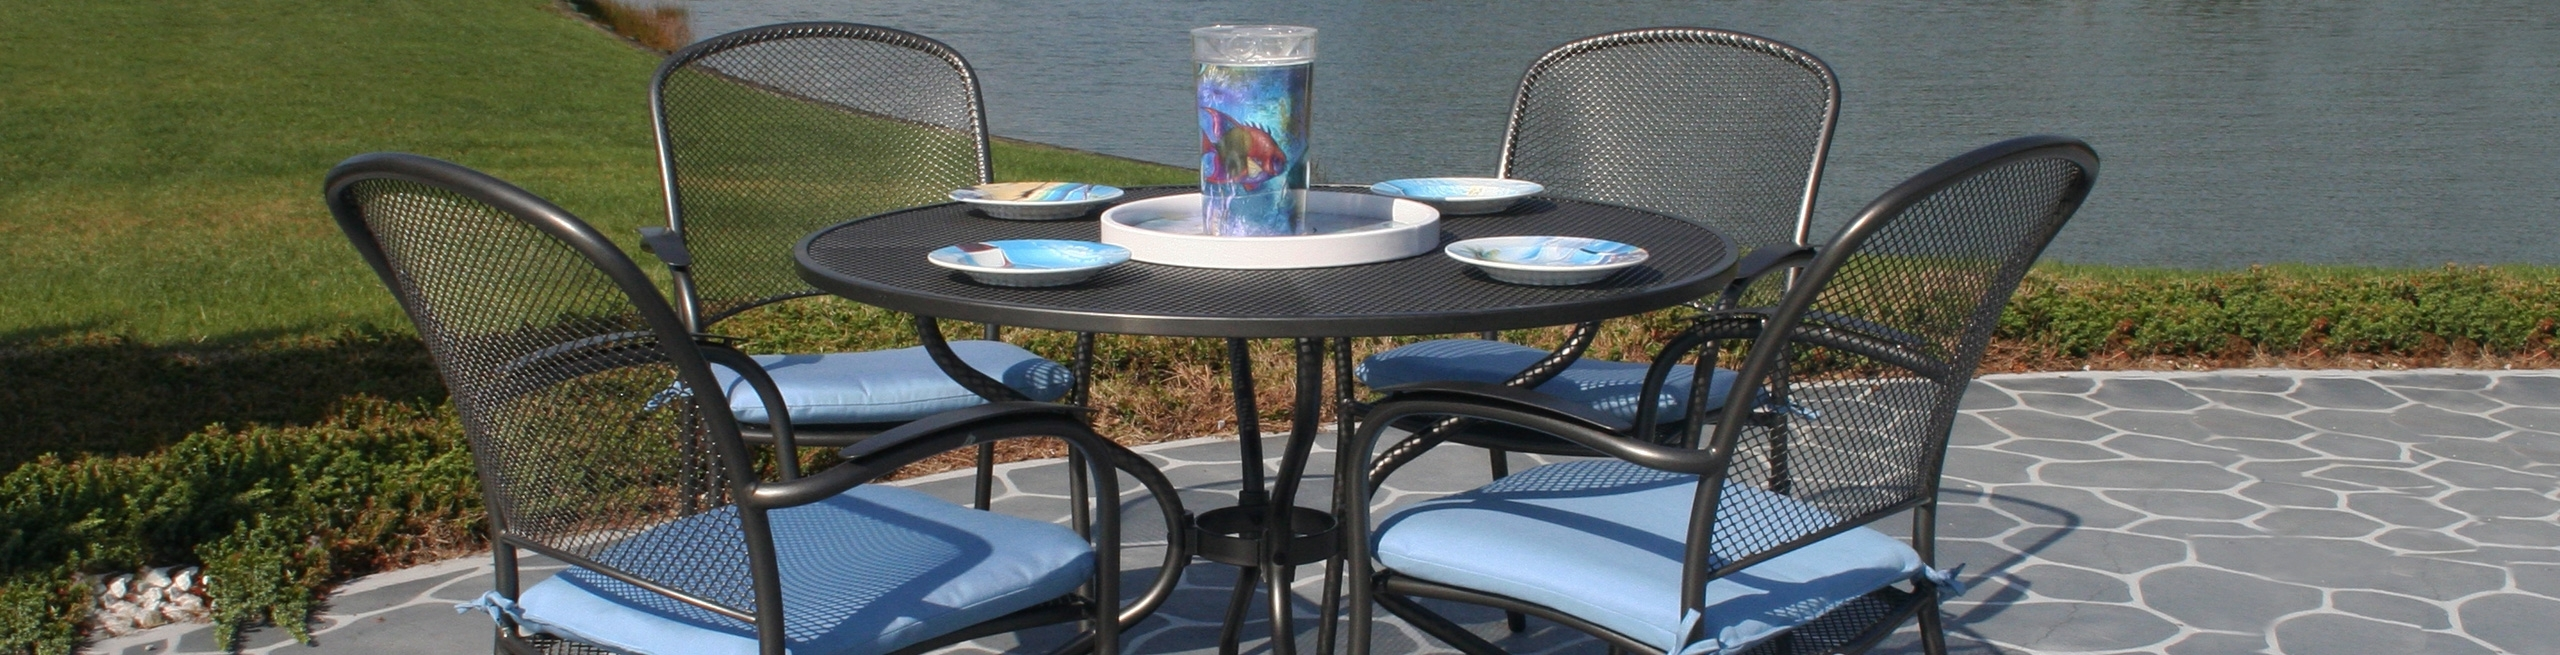 Kettler Patio Umbrellas With Famous Outdoor Patio Furniture: Kettler Patio Furniture (Gallery 3 of 20)